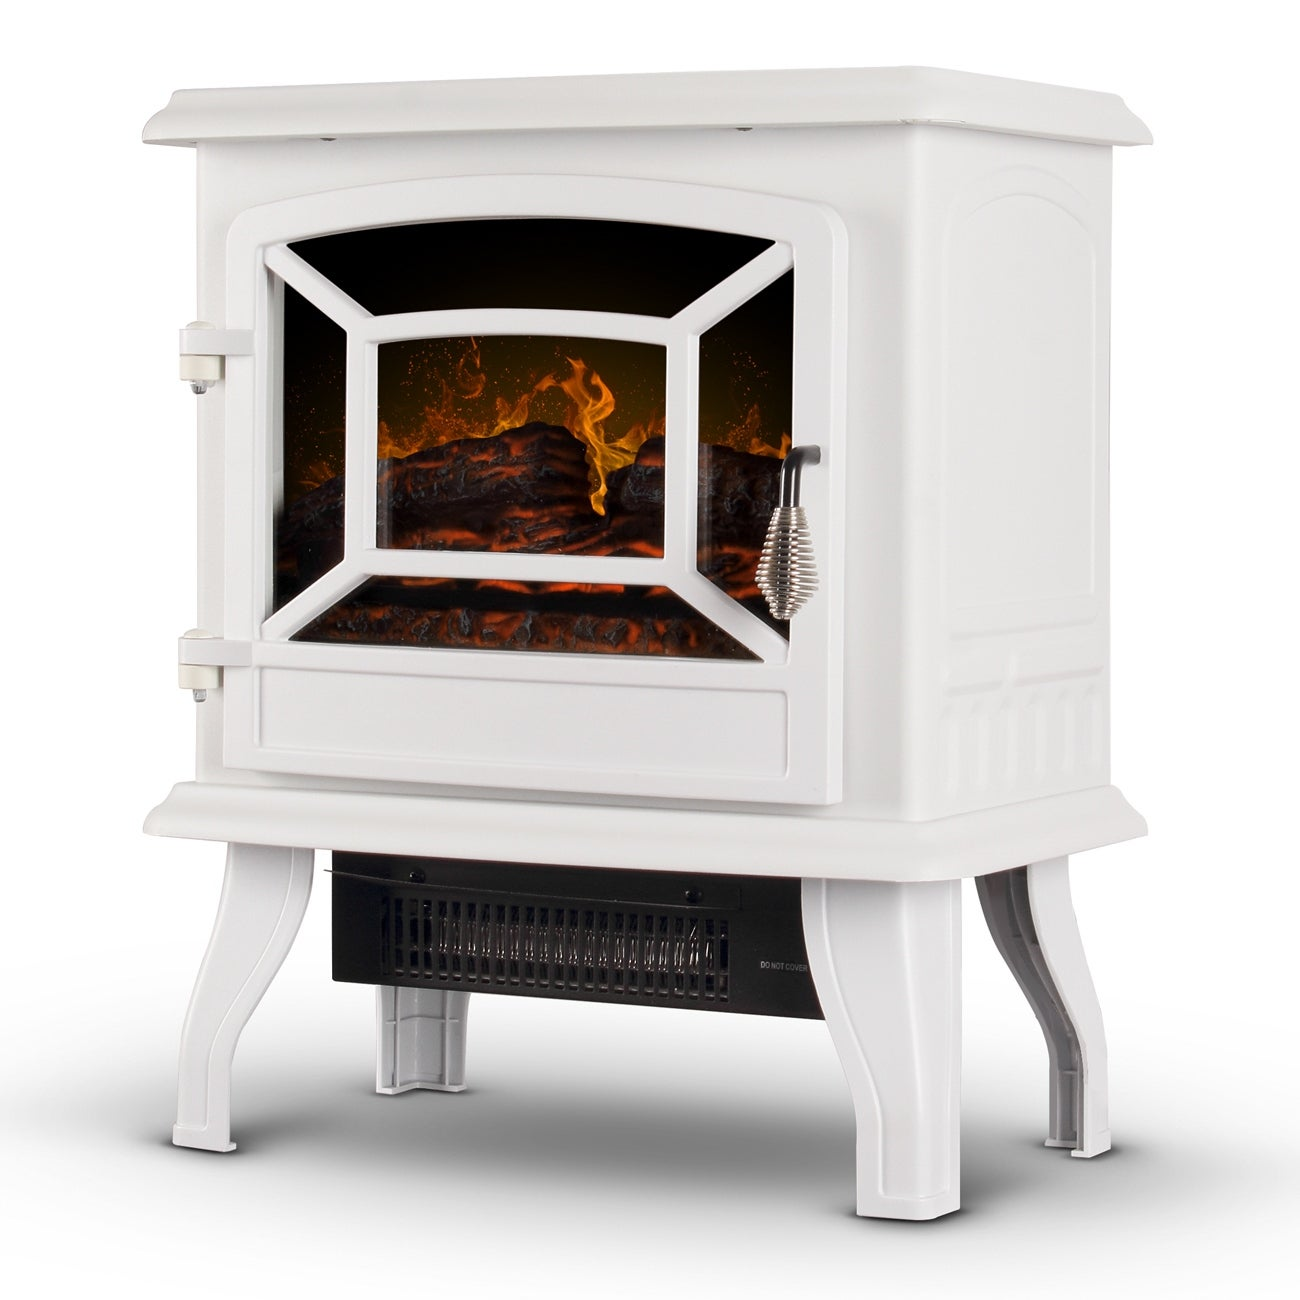 Della 17 1400w Freestanding Portable Electric Stove Fireplace Infrared Quartz Heater With Realistic Led Flames White Overstock 25629282